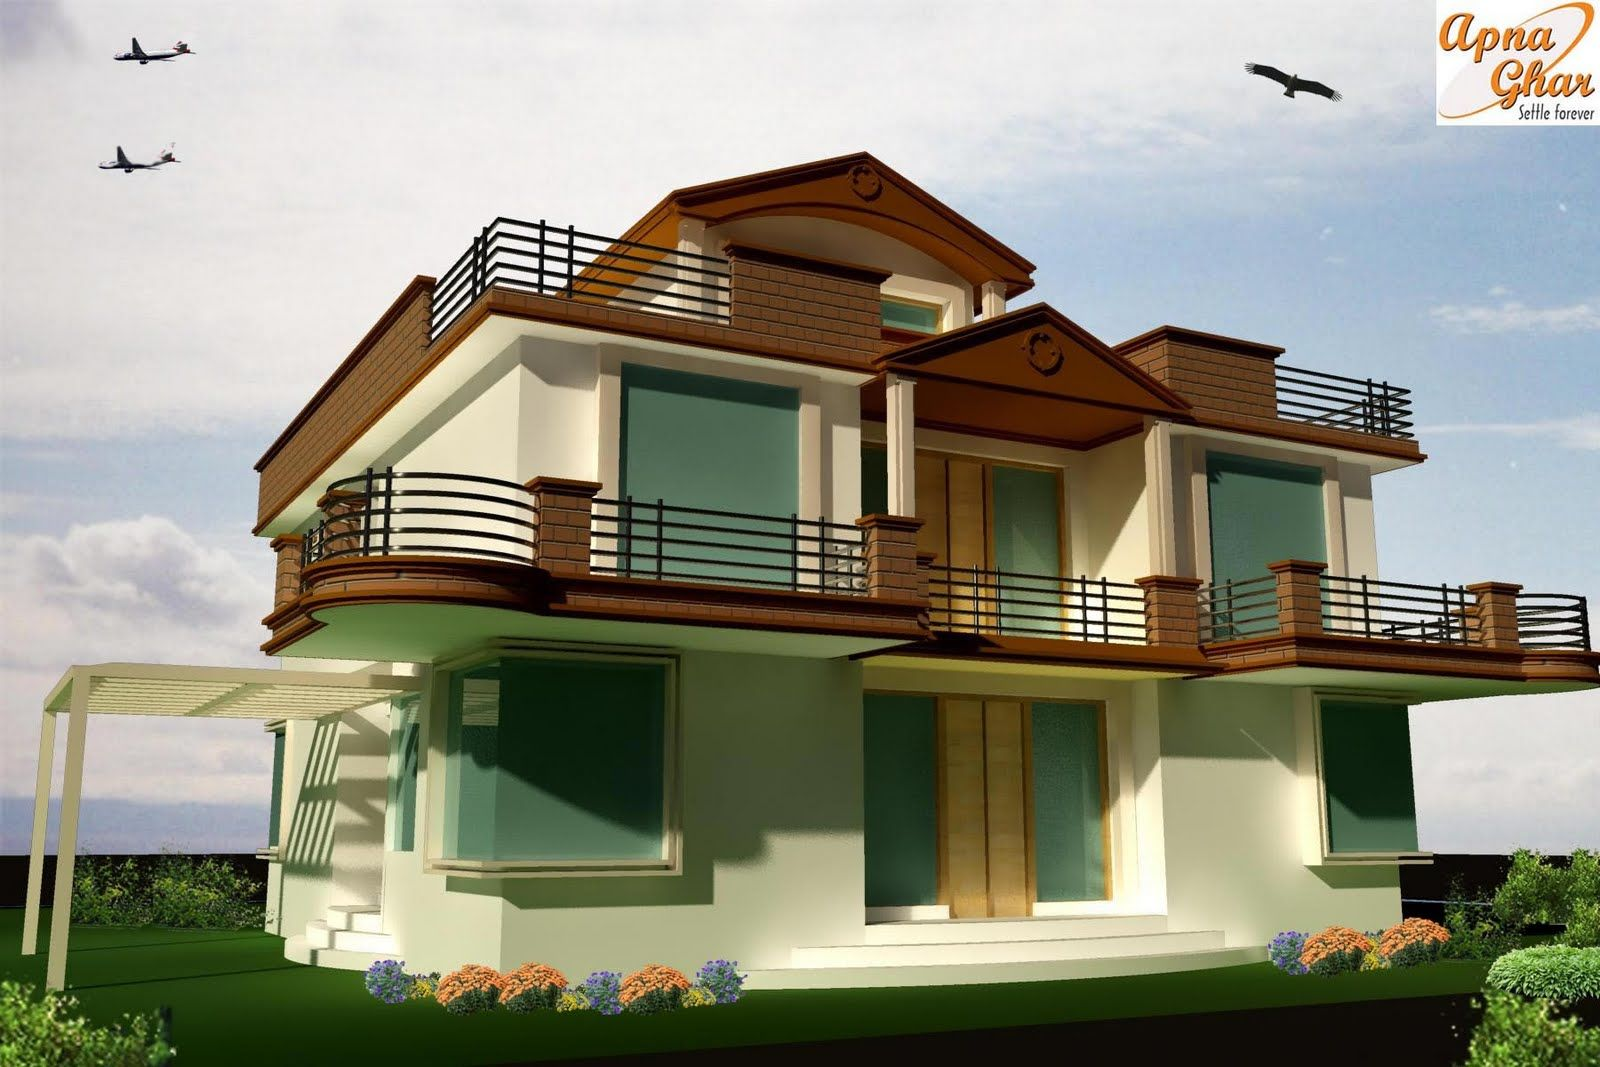 Architectural designs modern architectural house plans for Home architectures